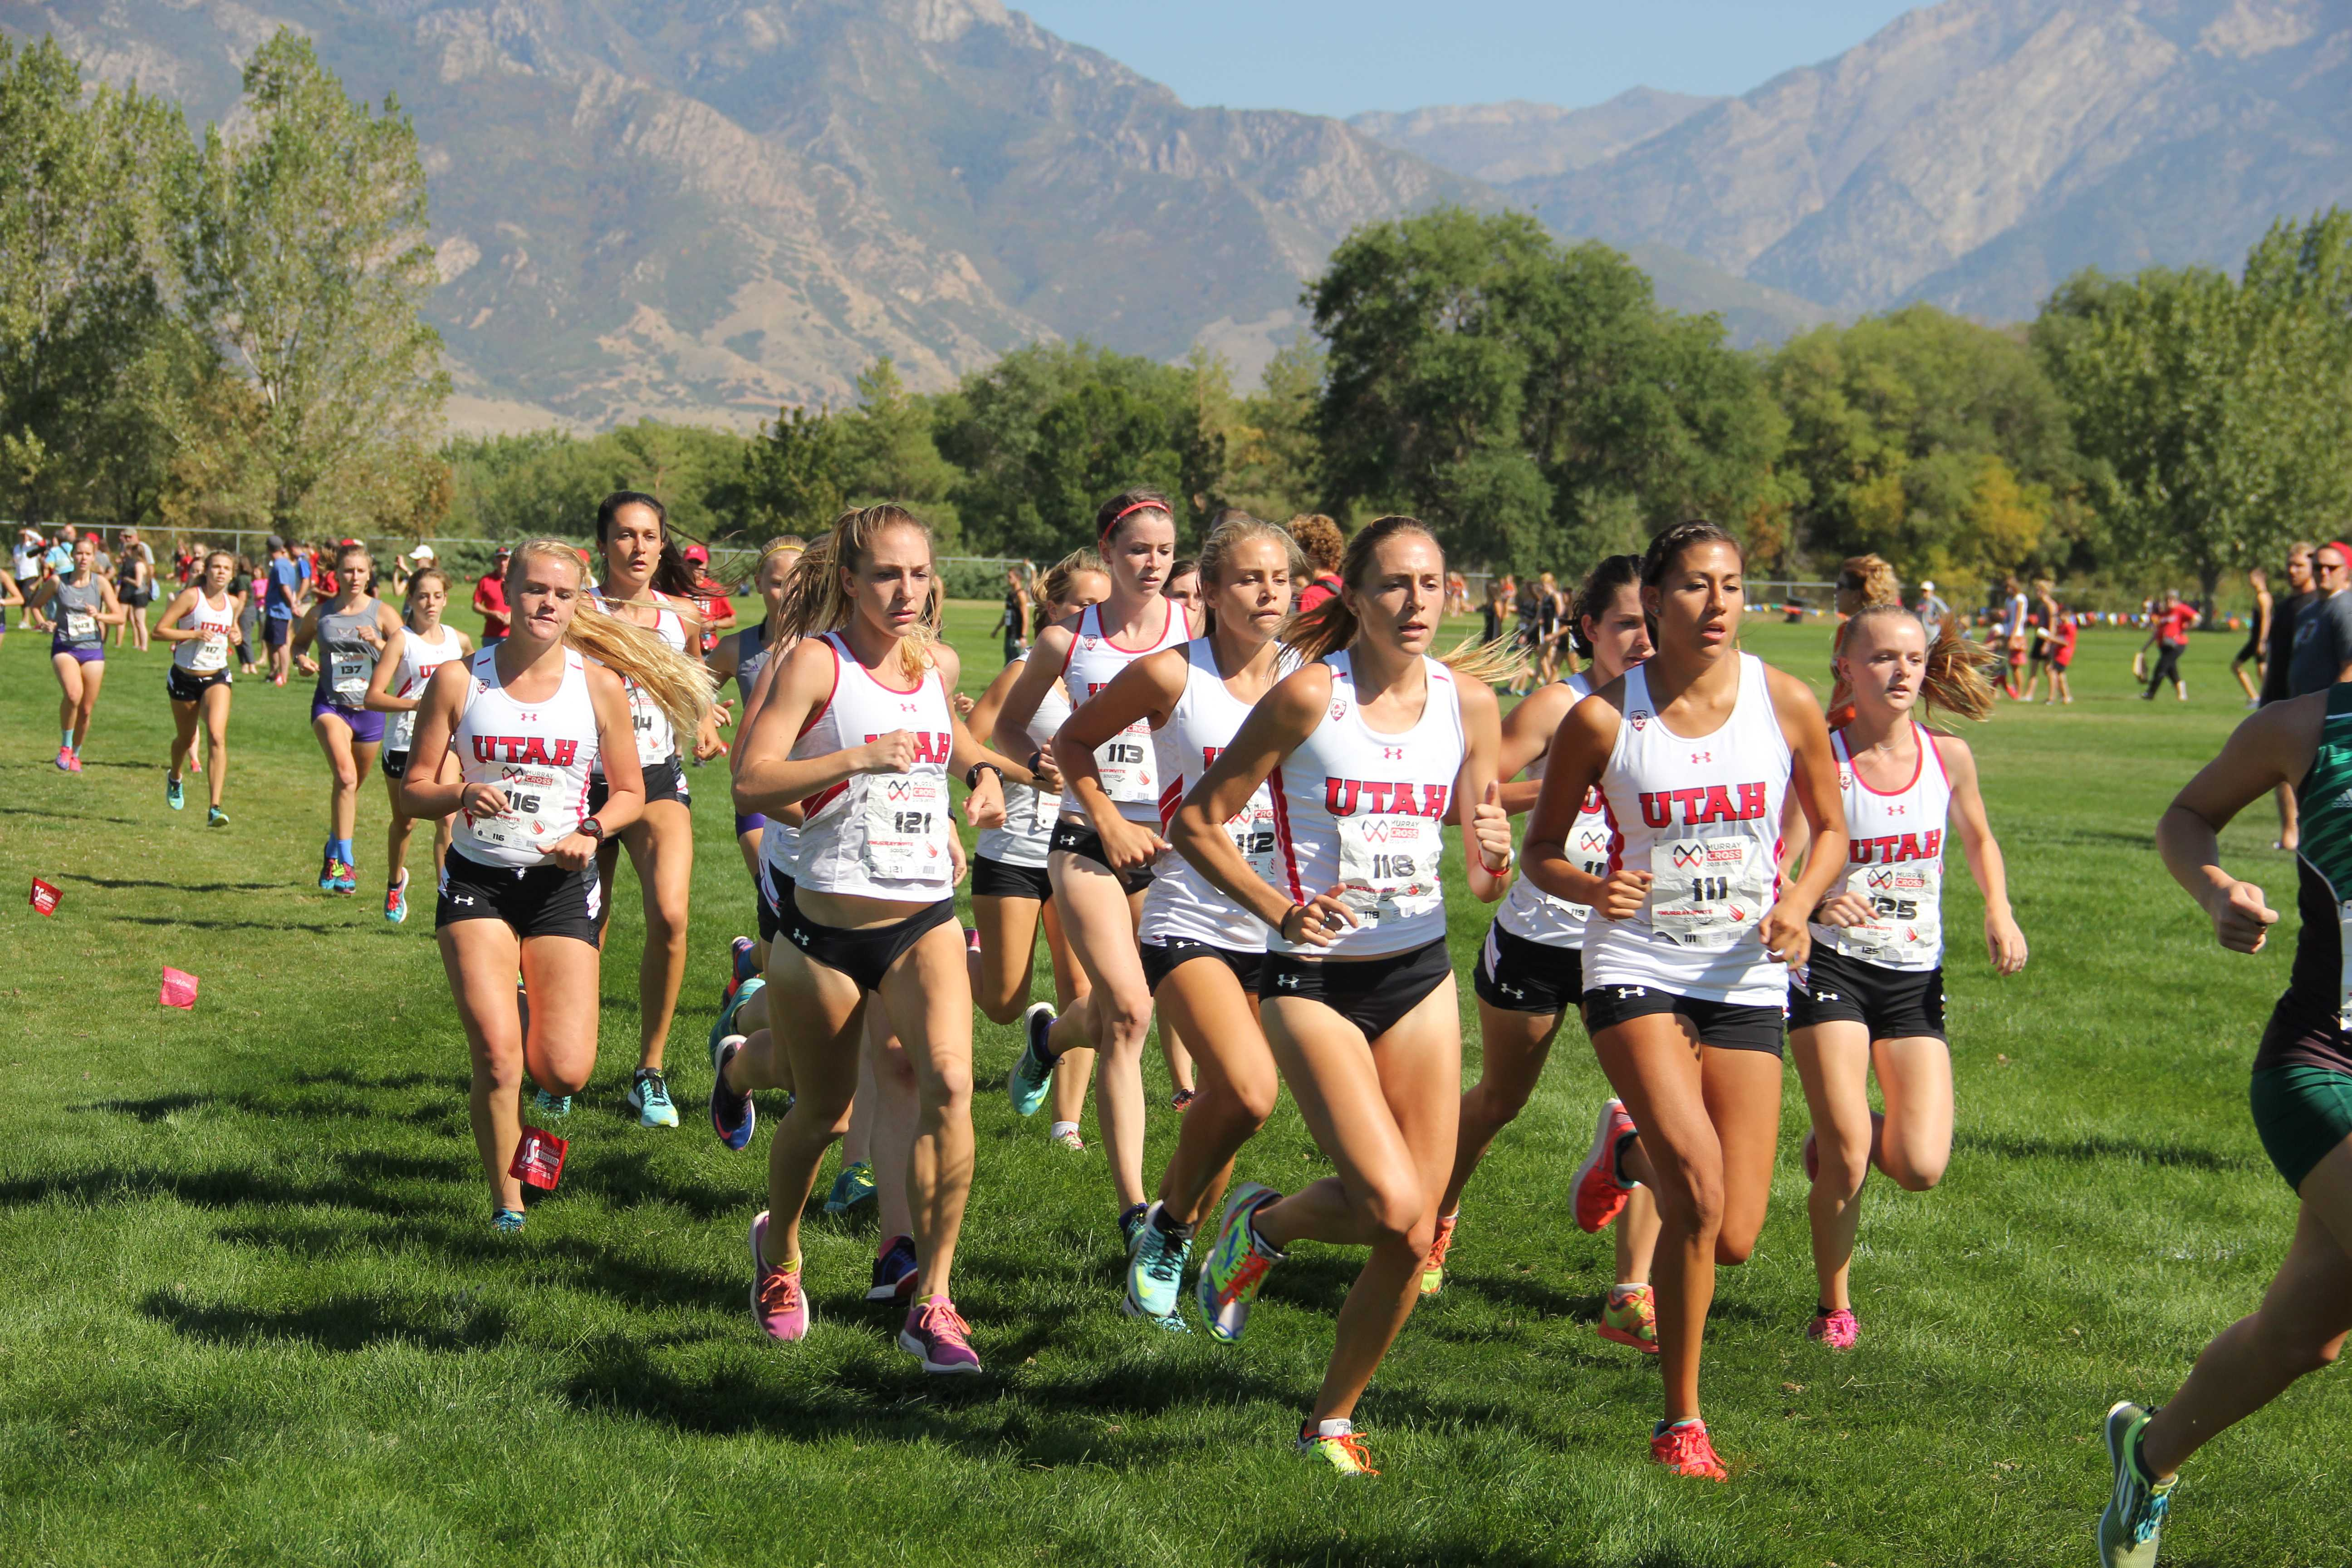 Field announced for NCAA Cross Country Championships